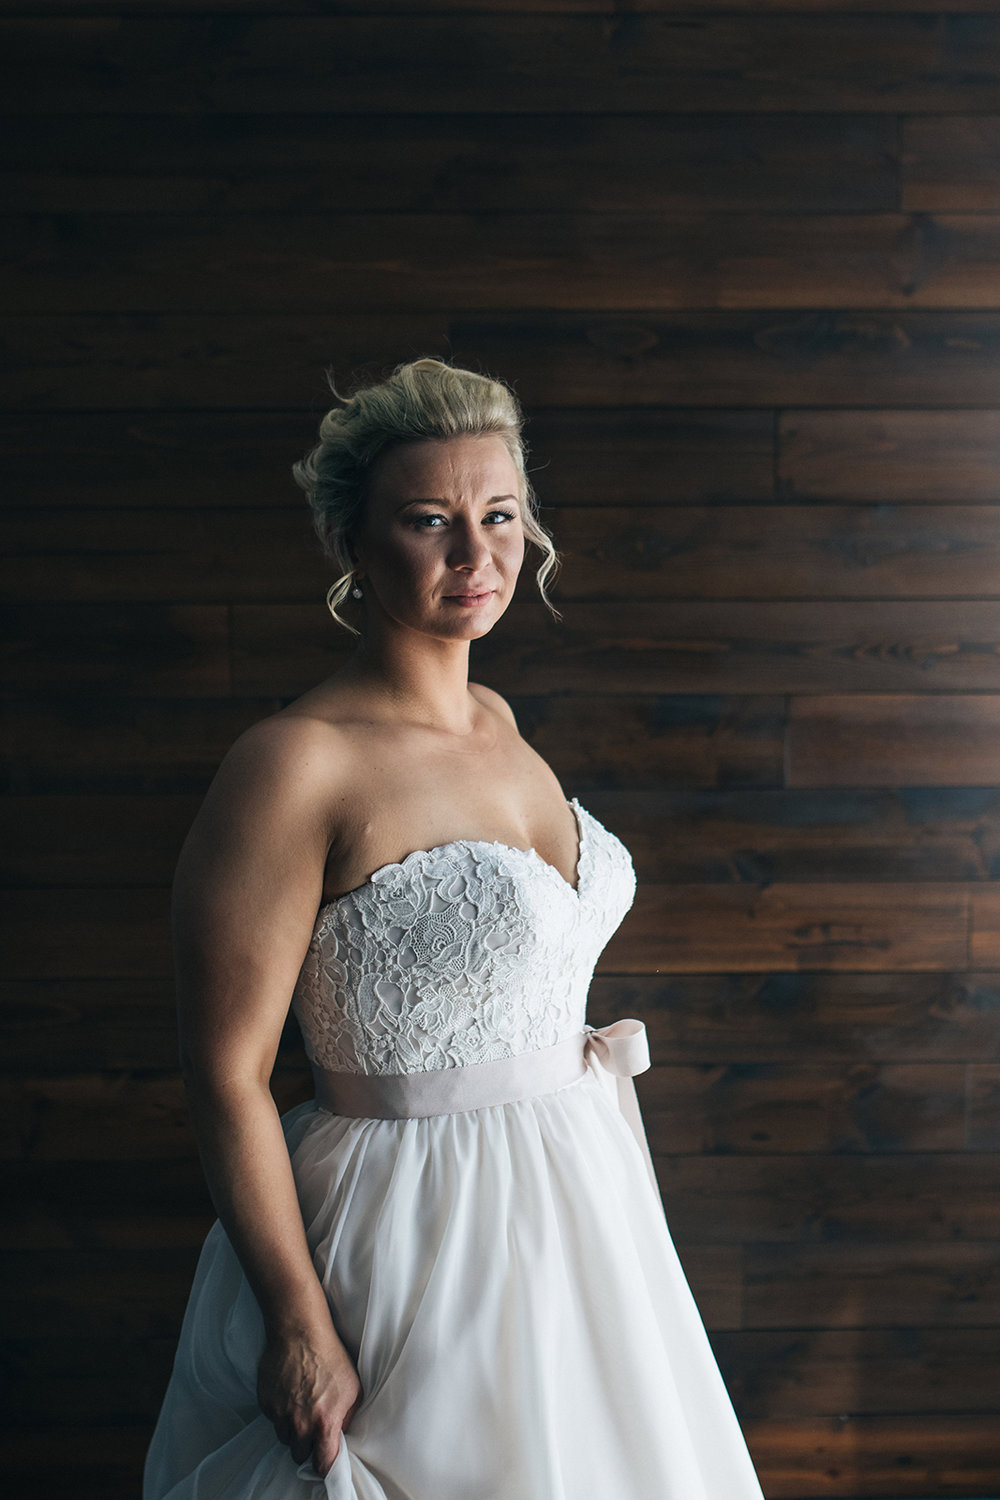 Click on image to view Brenna's wedding blog!